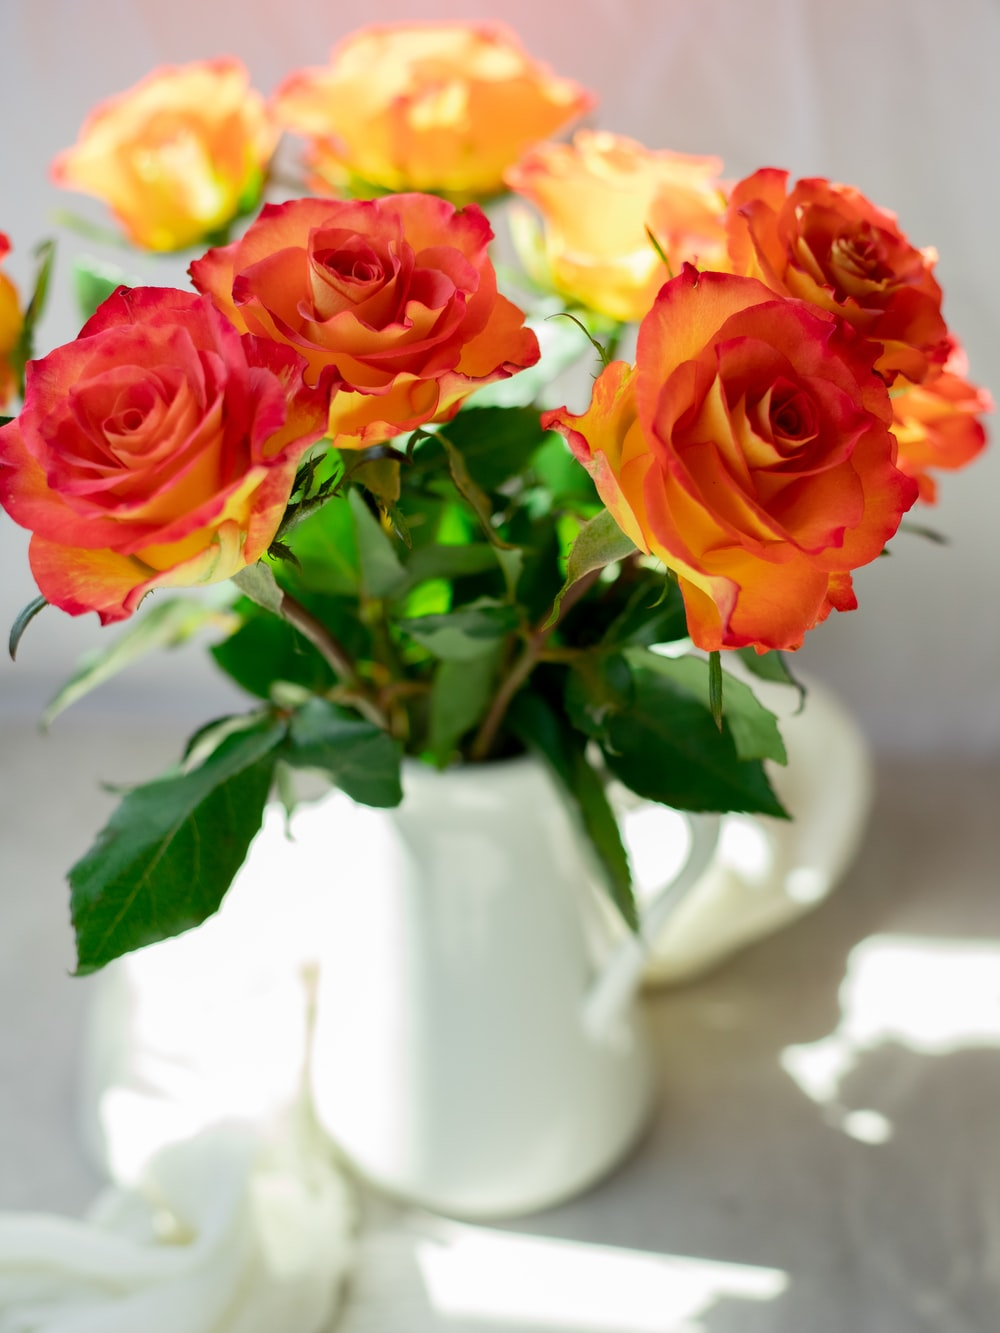 red and yellow roses in white ceramic vase